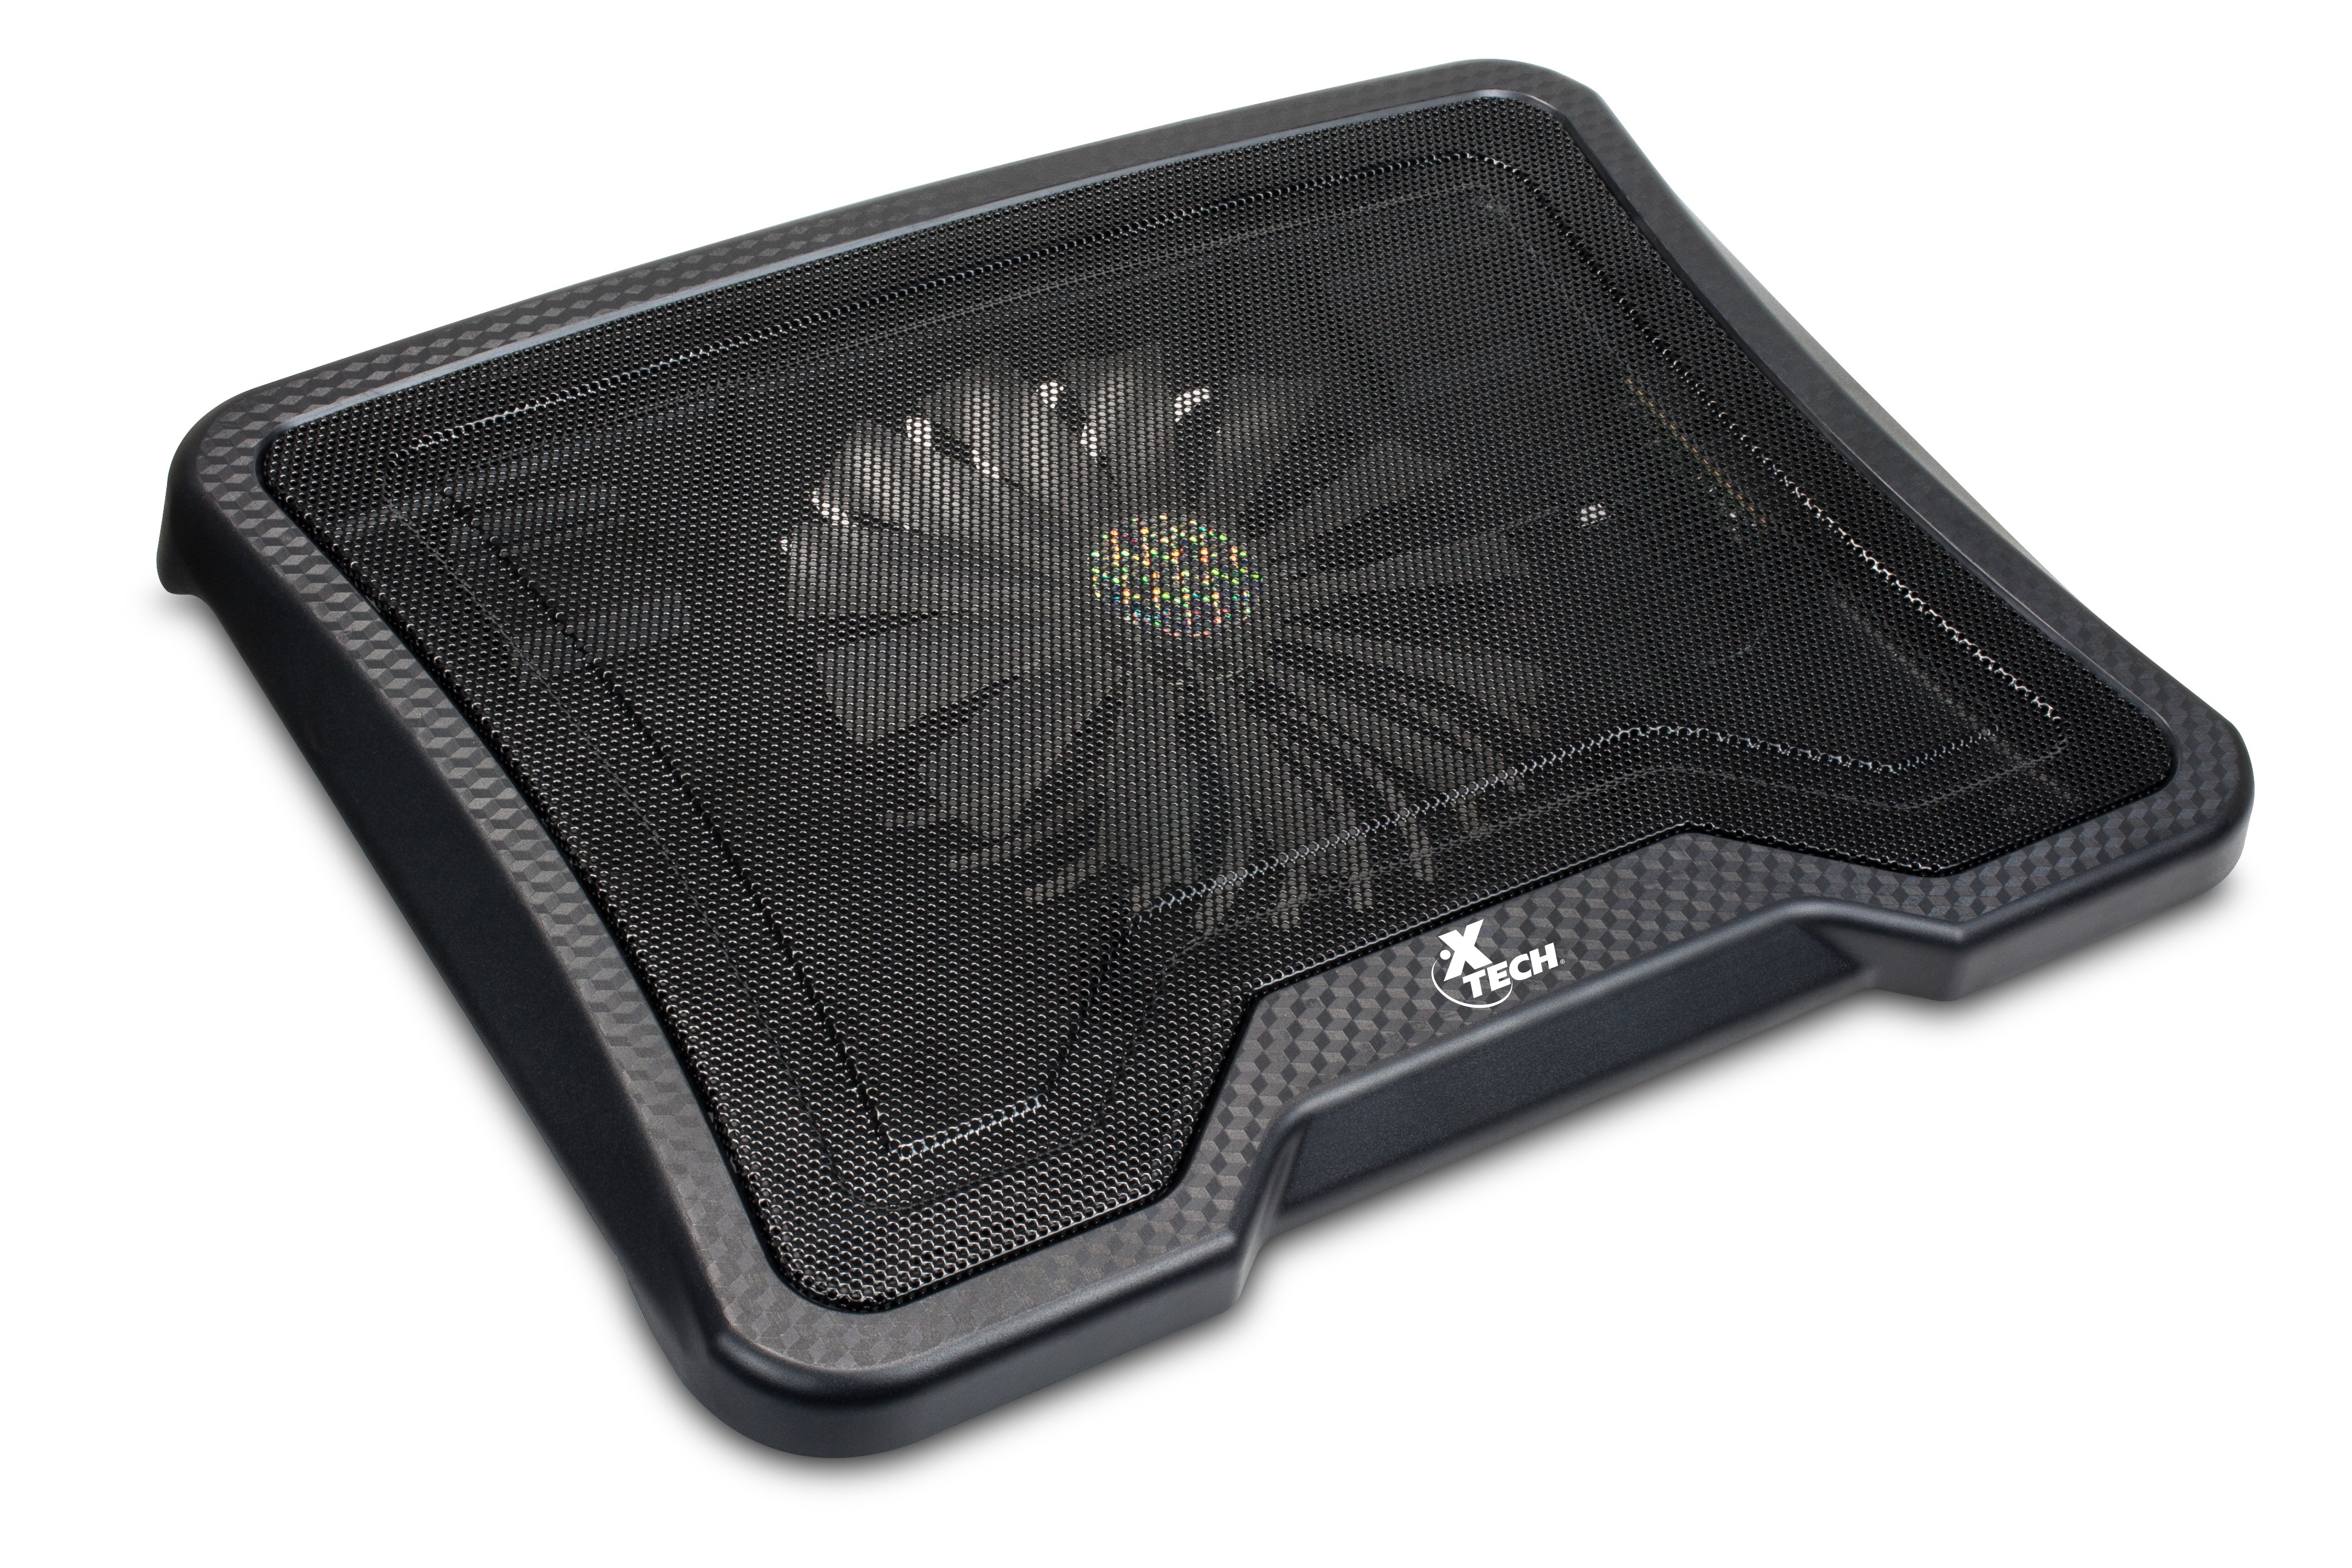 Xtech NoteBook Cooling Pad